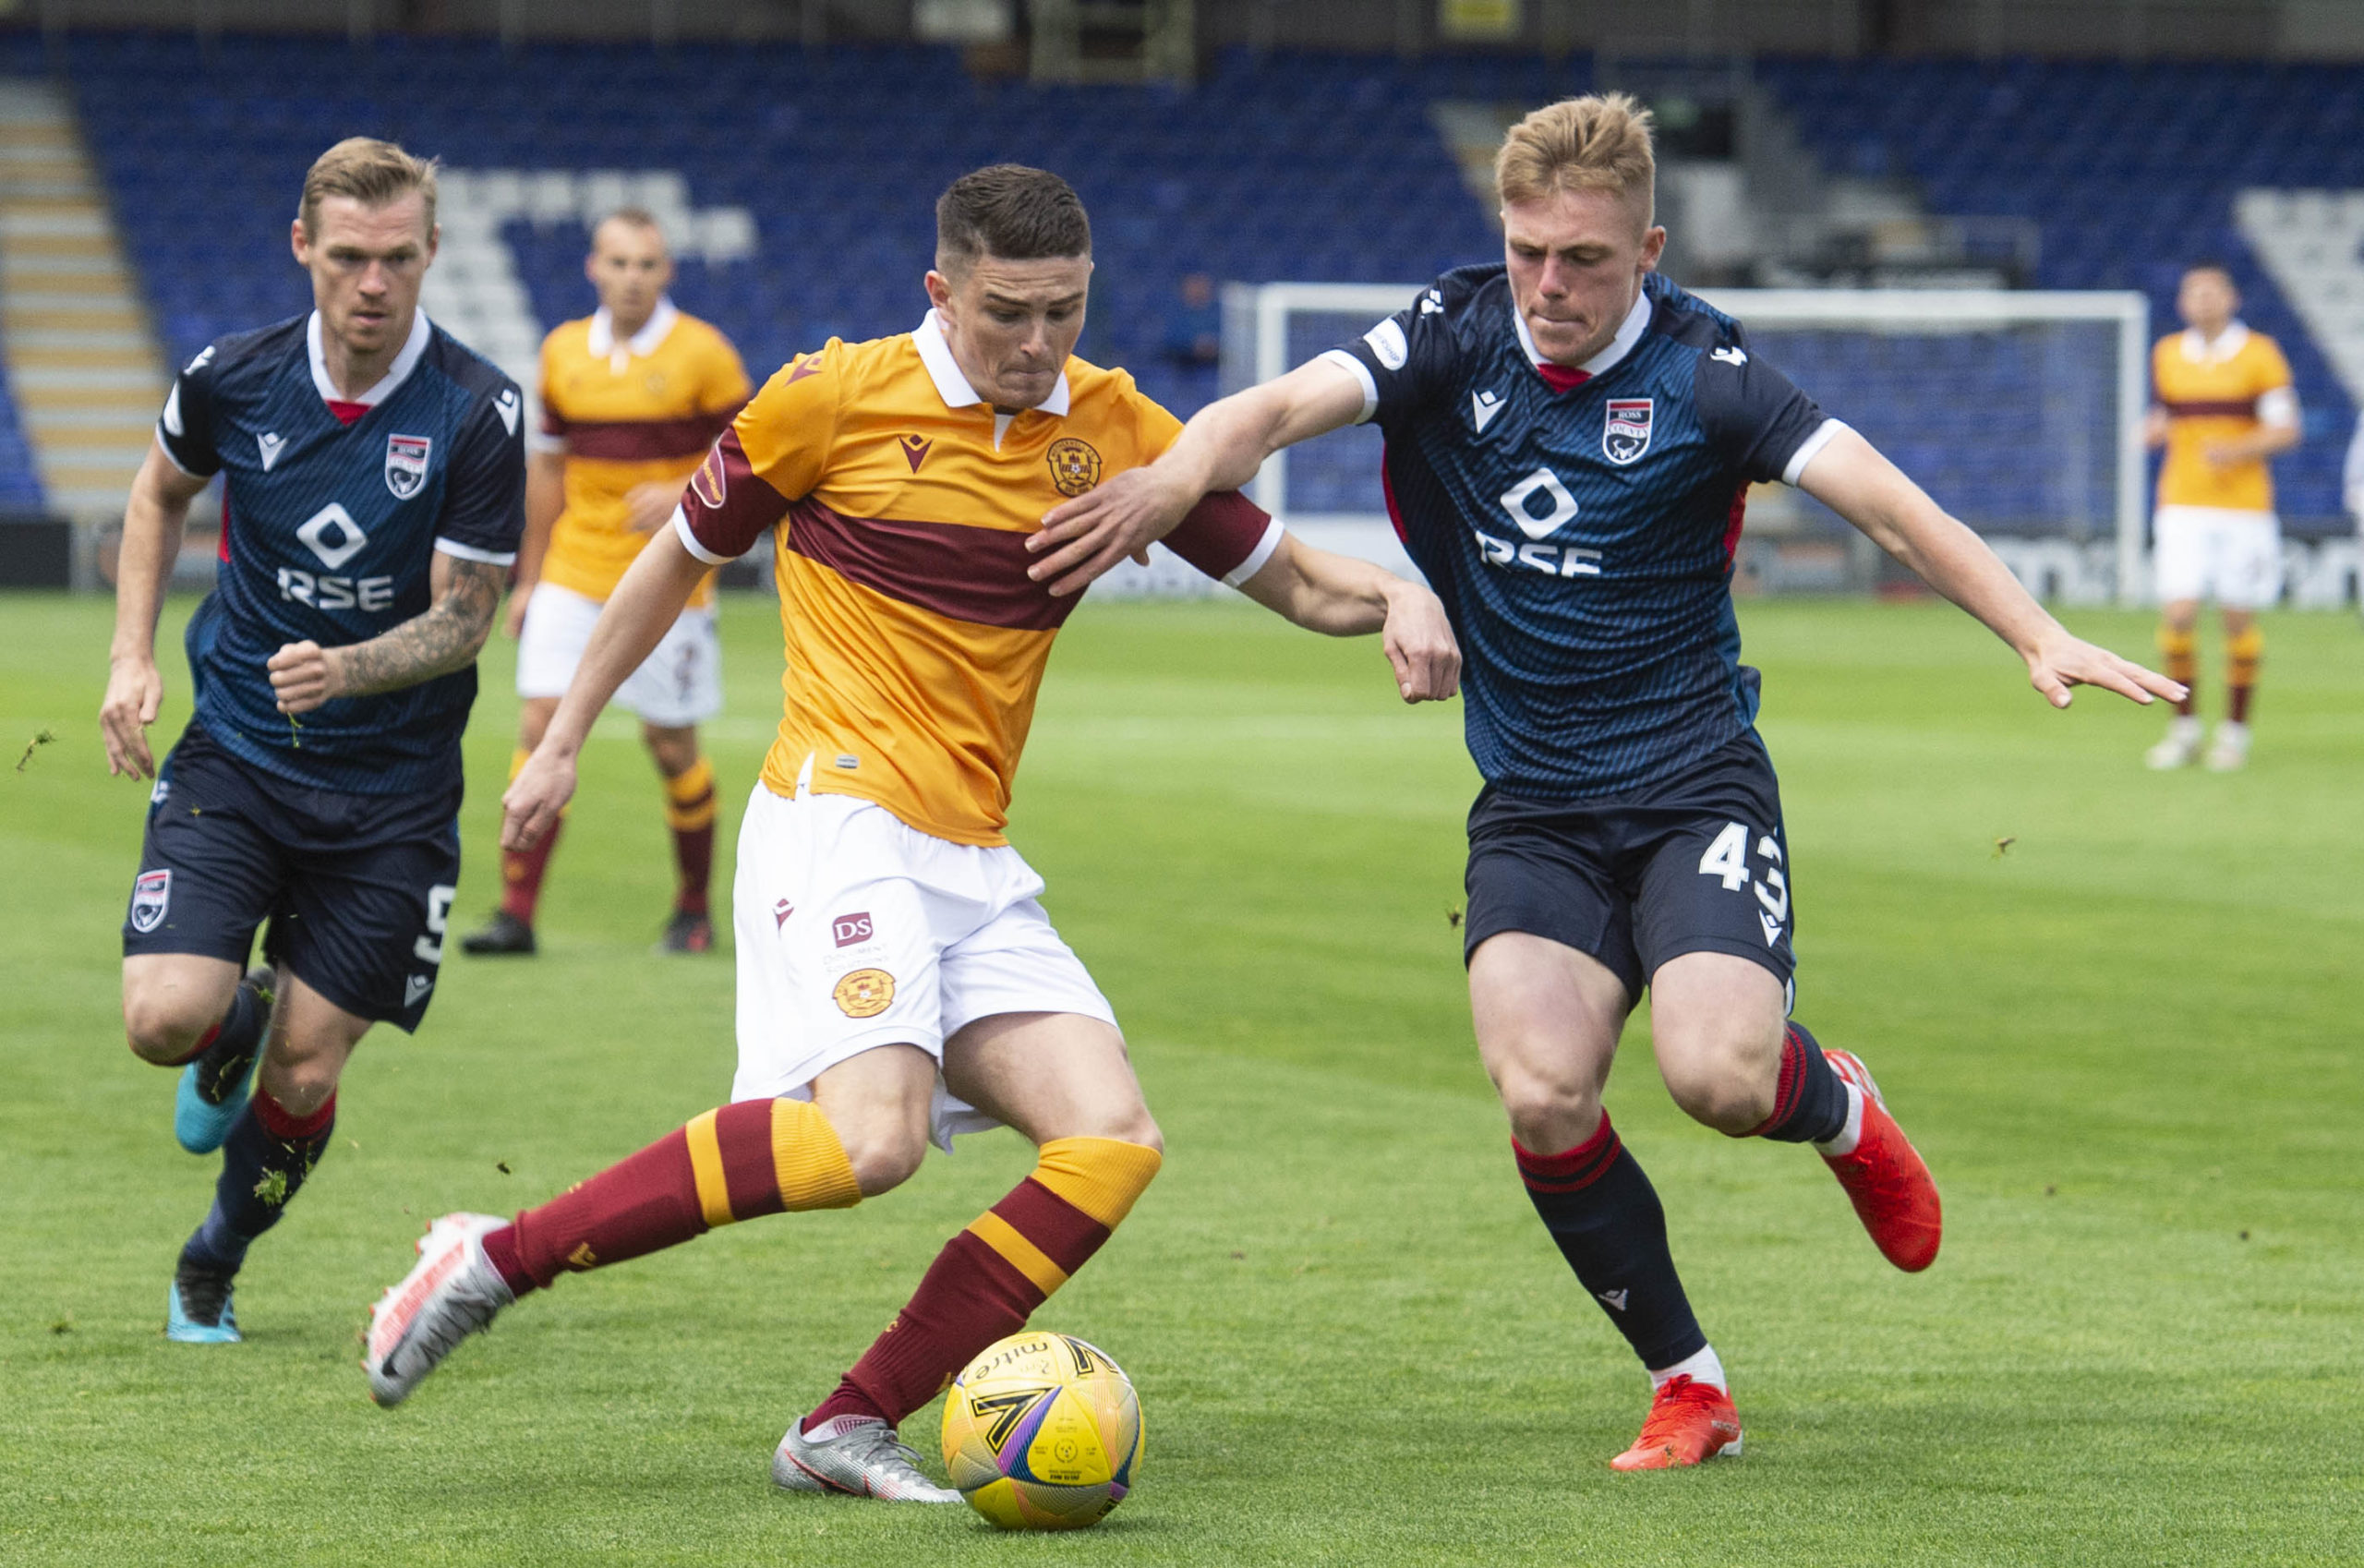 Ross County defender Josh Reid (right) has impressed in his early appearances